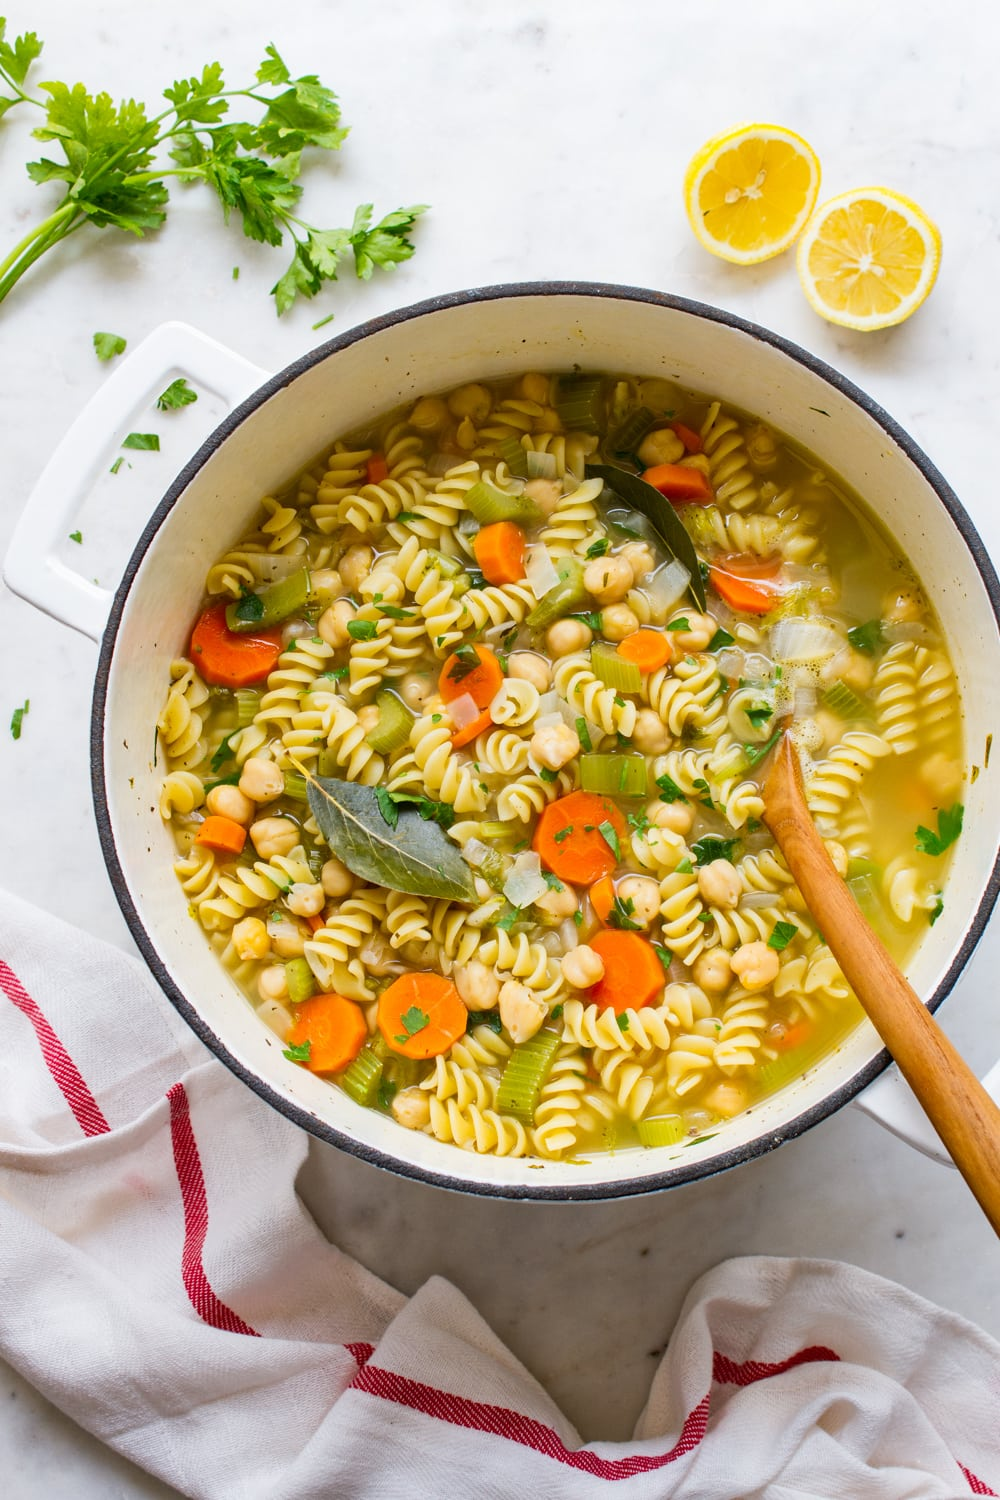 top down view of a big pot of homemade vegan chickpea noodle soup with wooden spoon.